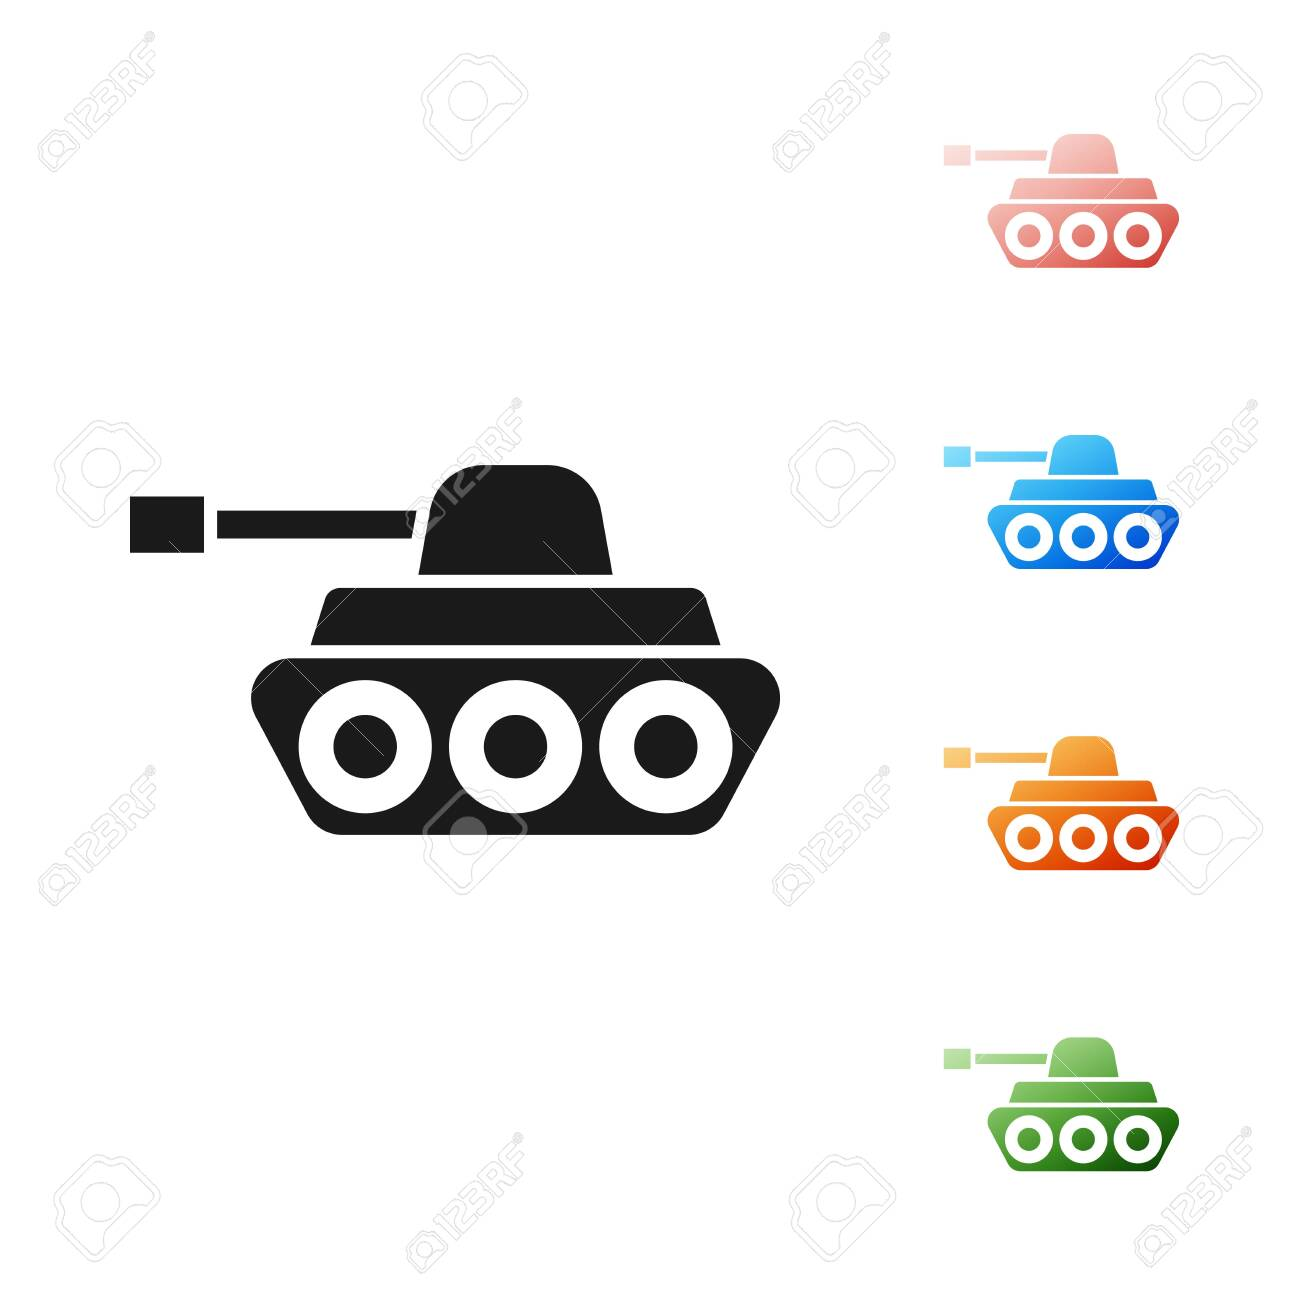 black military tank icon isolated on white background set icons royalty free cliparts vectors and stock illustration image 131417091 123rf com